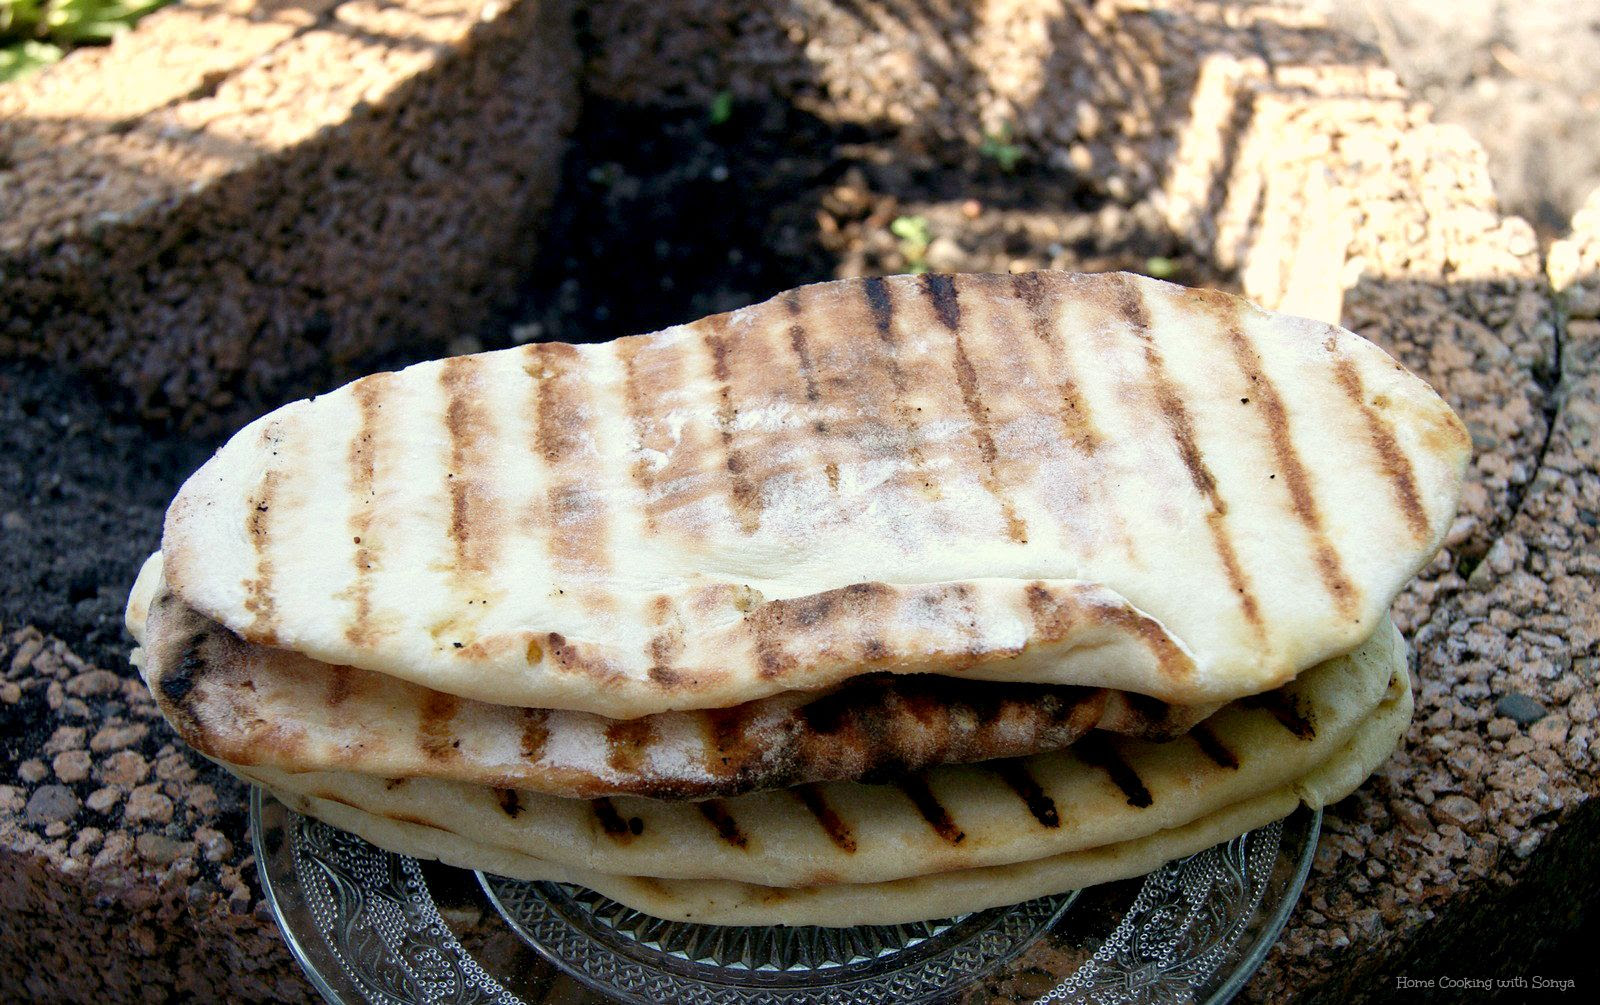 Fri July 26,2013 photo grillednaan1_zps466b73c7.jpg